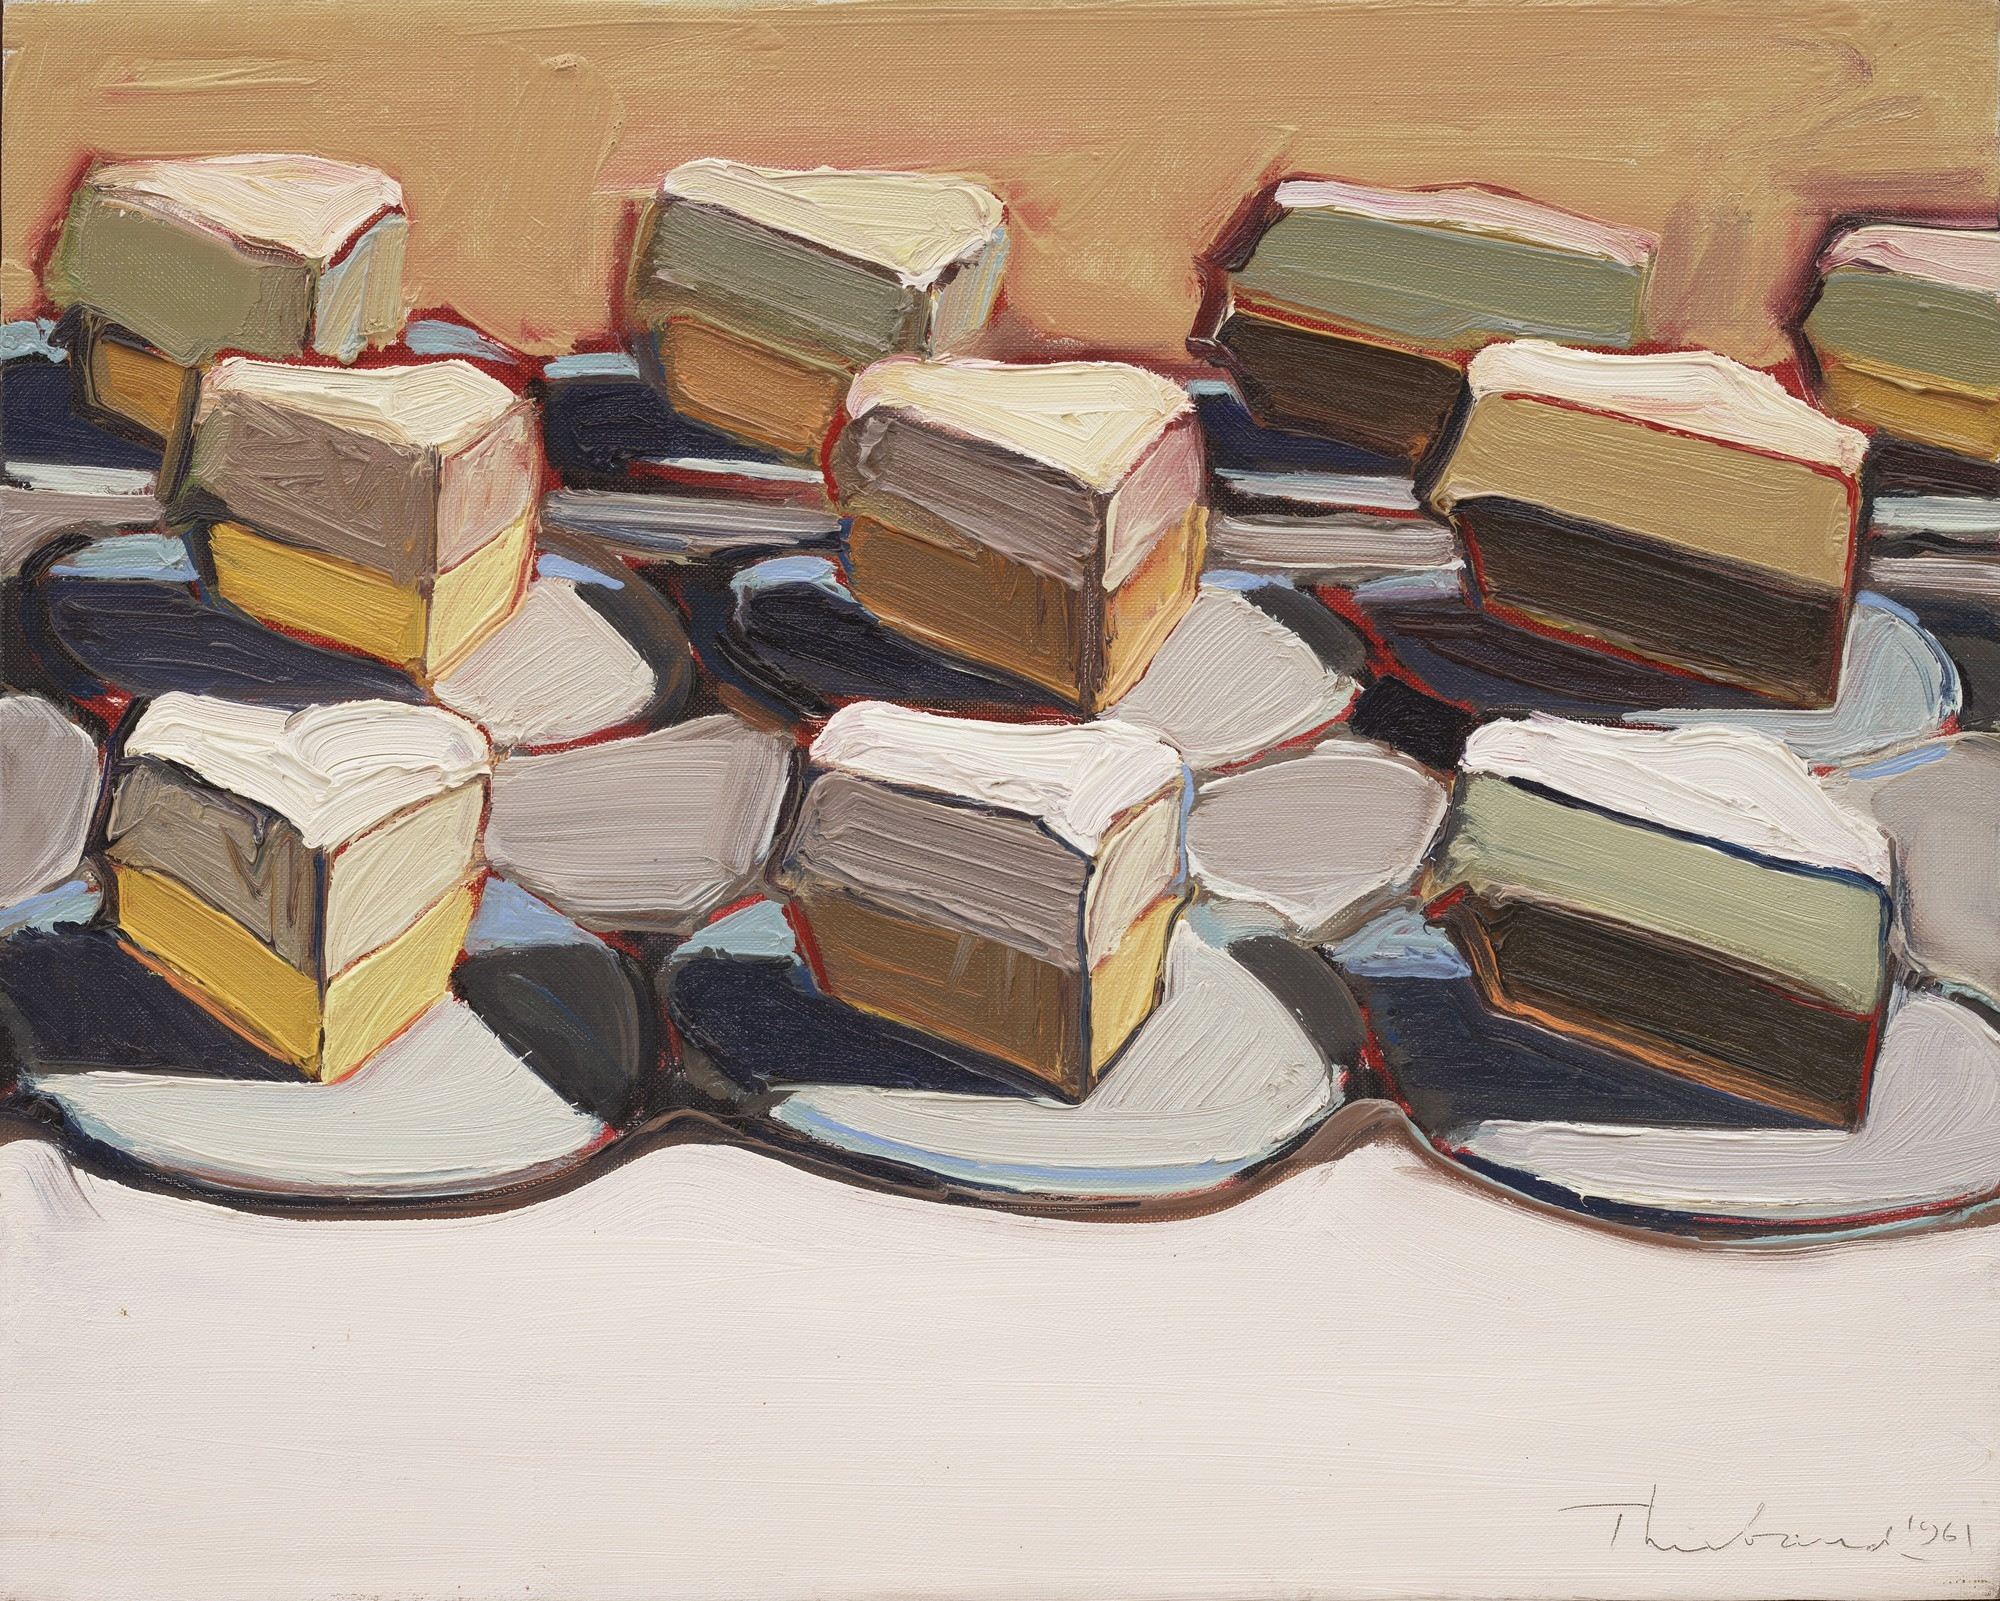 Wayne Thiebaud. Cut Meringues. 1961